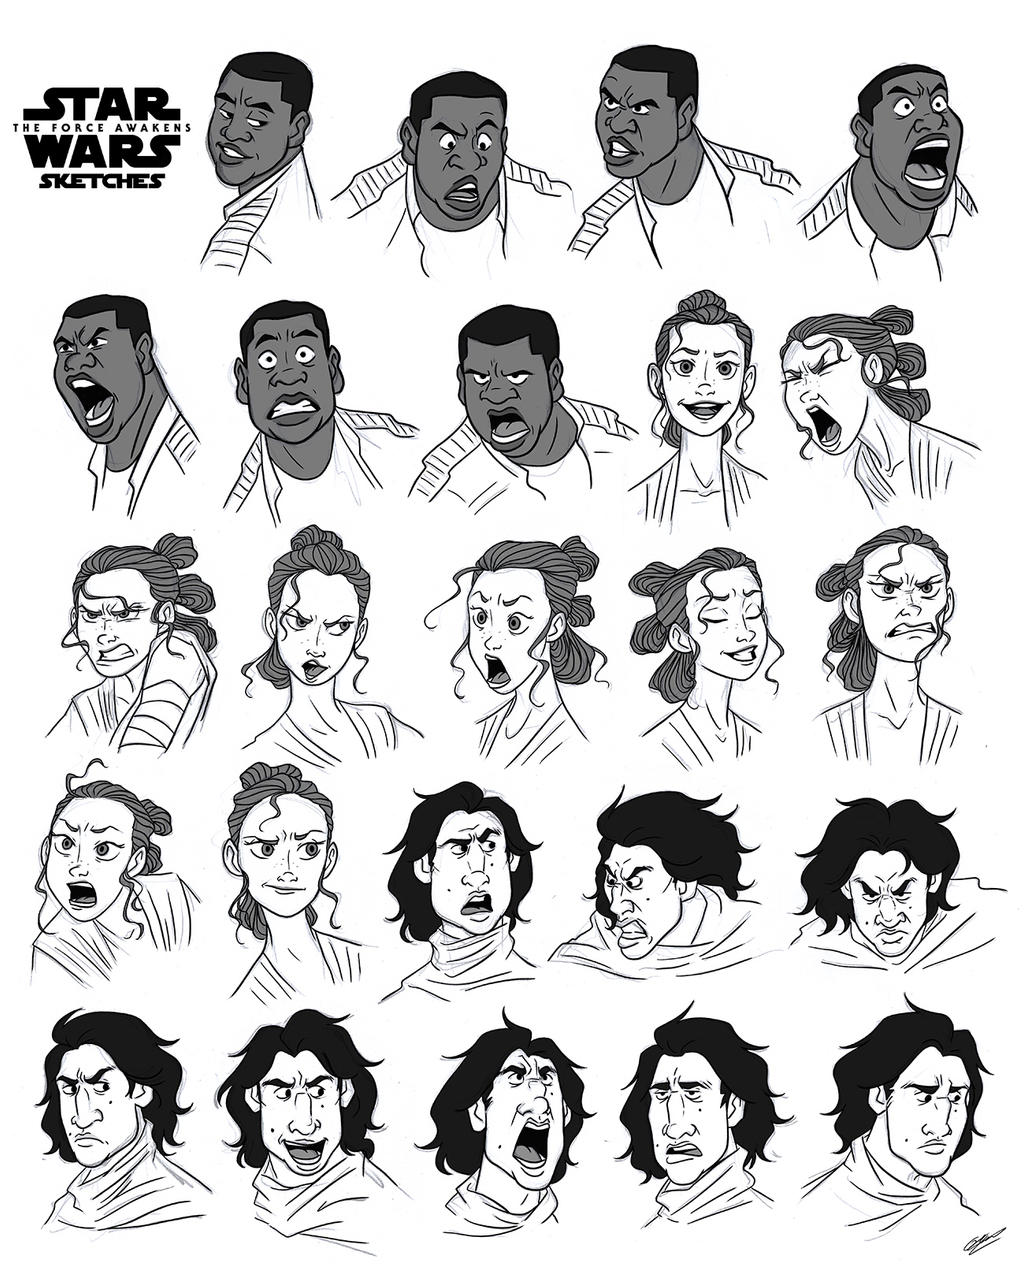 STAR WARS CHARACTERS SKETCHES By GrievousGeneral On DeviantArt